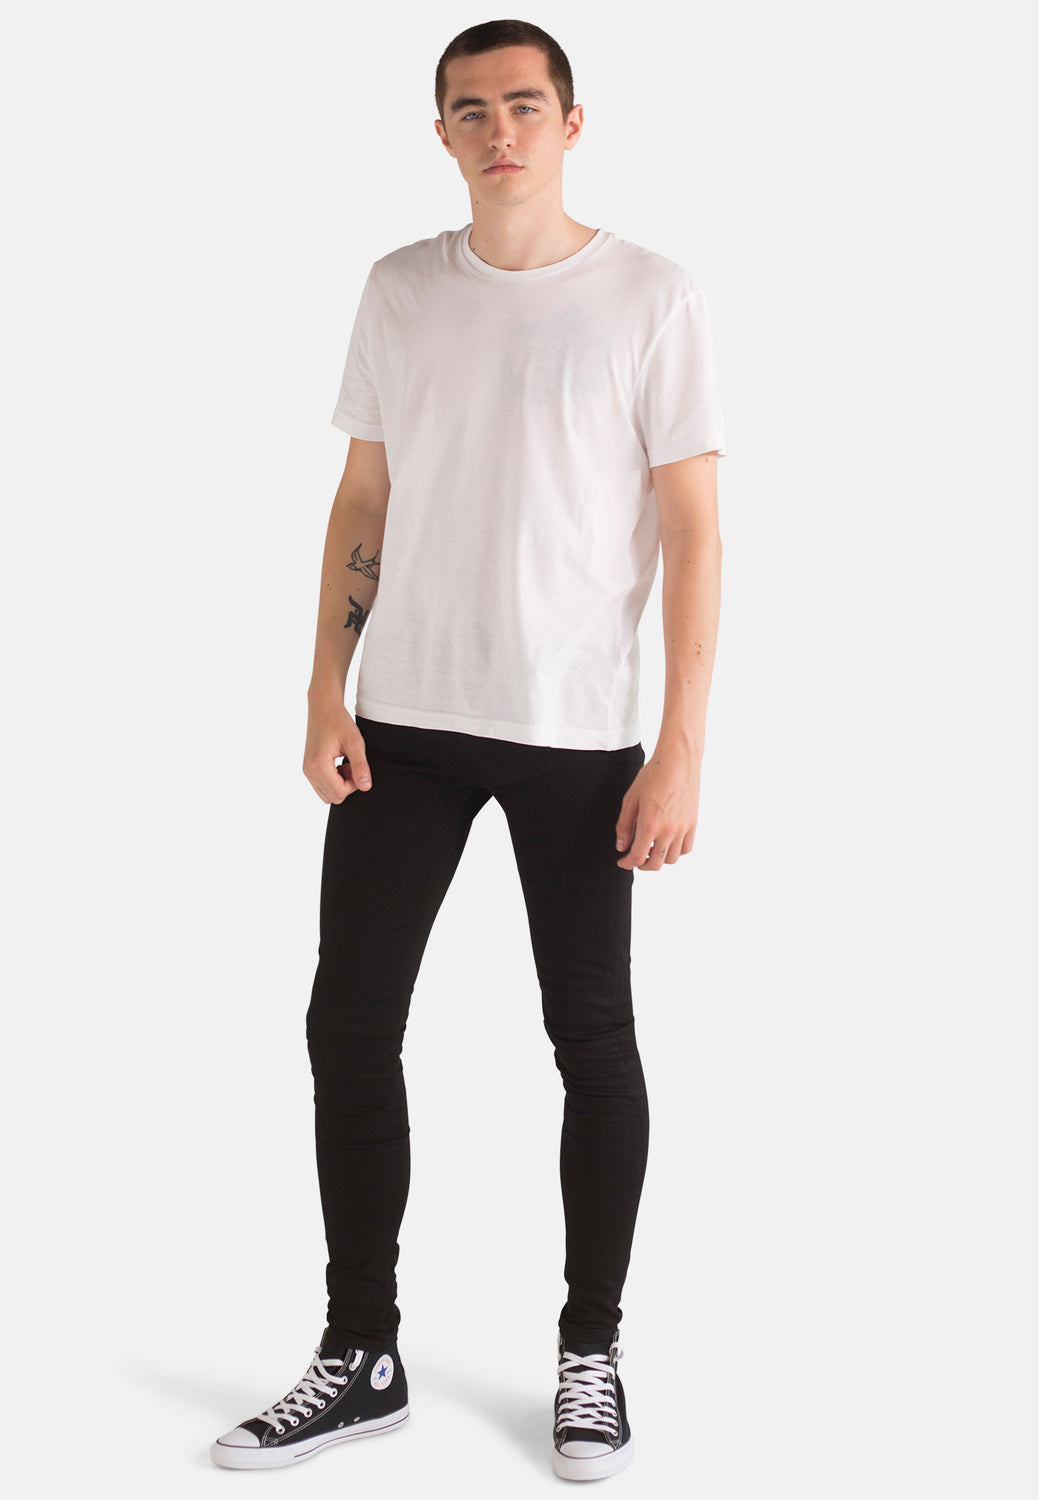 Organic Black Denim Super Skinny Jeans - Monkee Genes Organic Jeans Denim - Men's Silhouette Monkee Genes Official  Monkee Genes Official